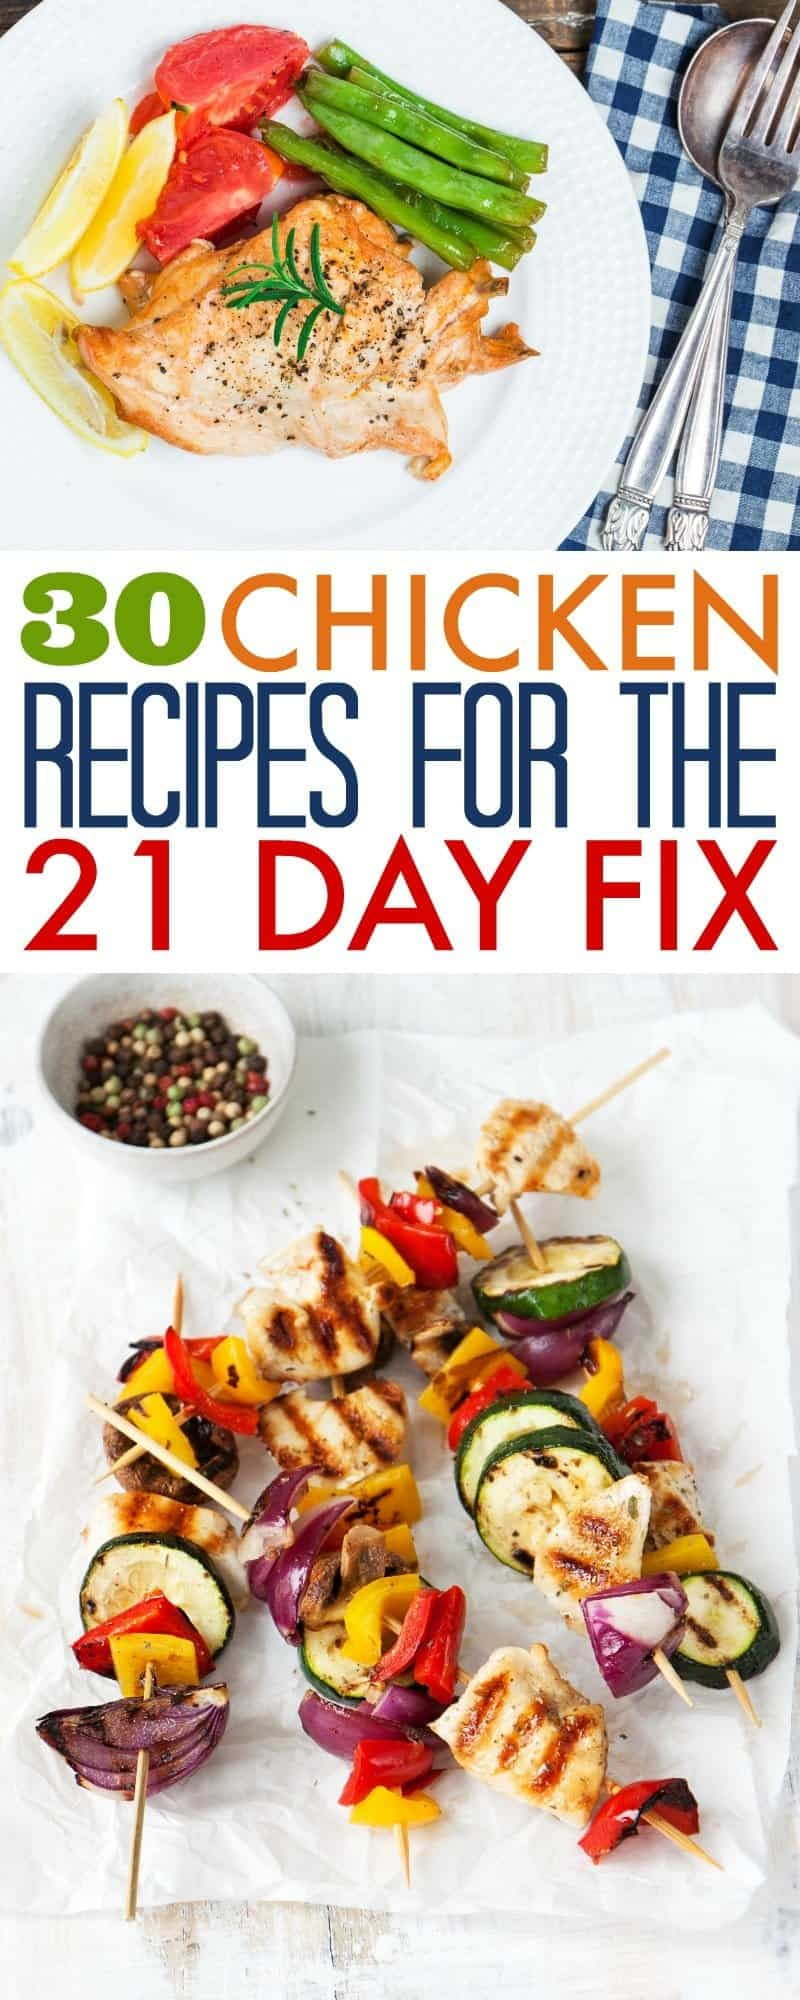 This list of 30 delicious 21 Day Fix Chicken Recipes includes container counts to help make it easier to plan your 21 Day Fix meals.